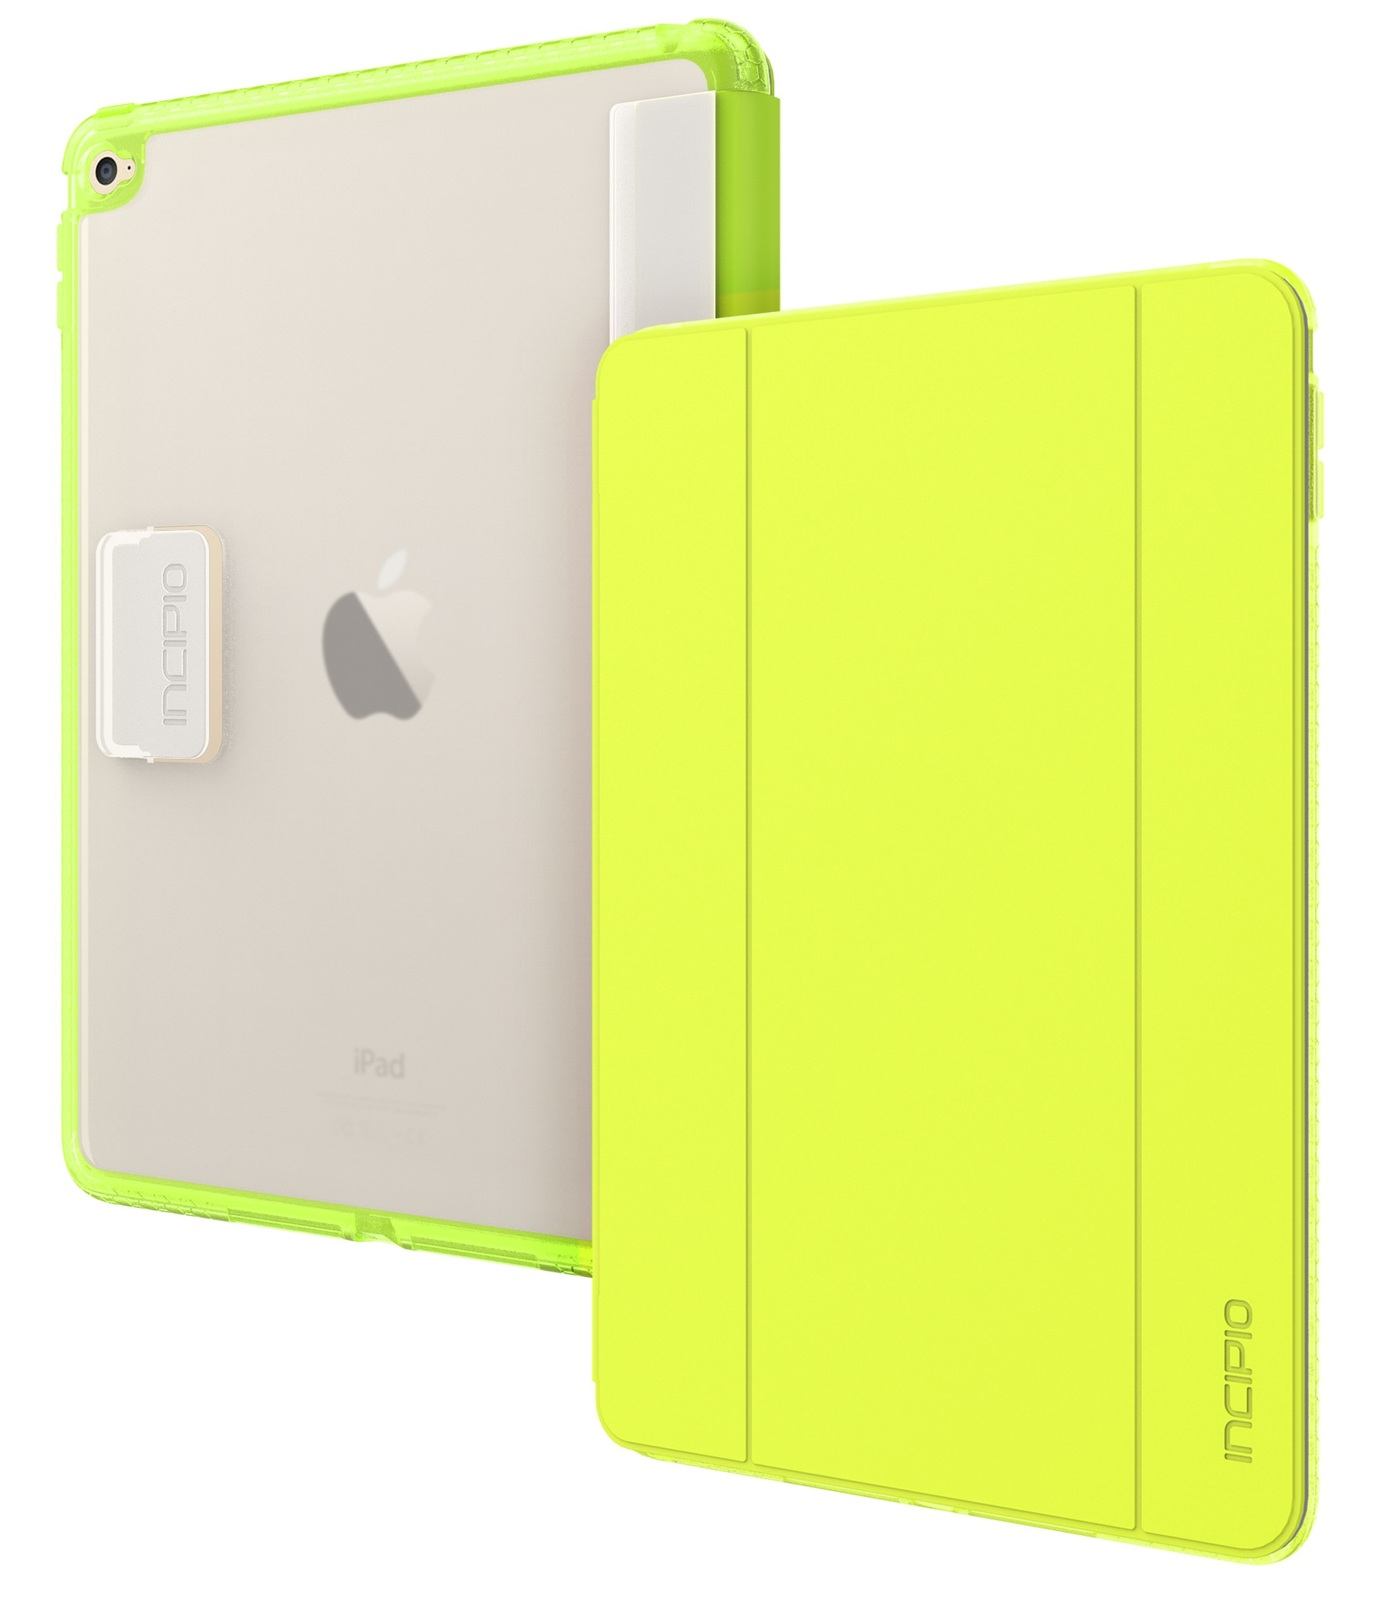 sale retailer 8a7a2 3d037 Incipio: Octane Folio for iPad Air 2 - Frost Pear